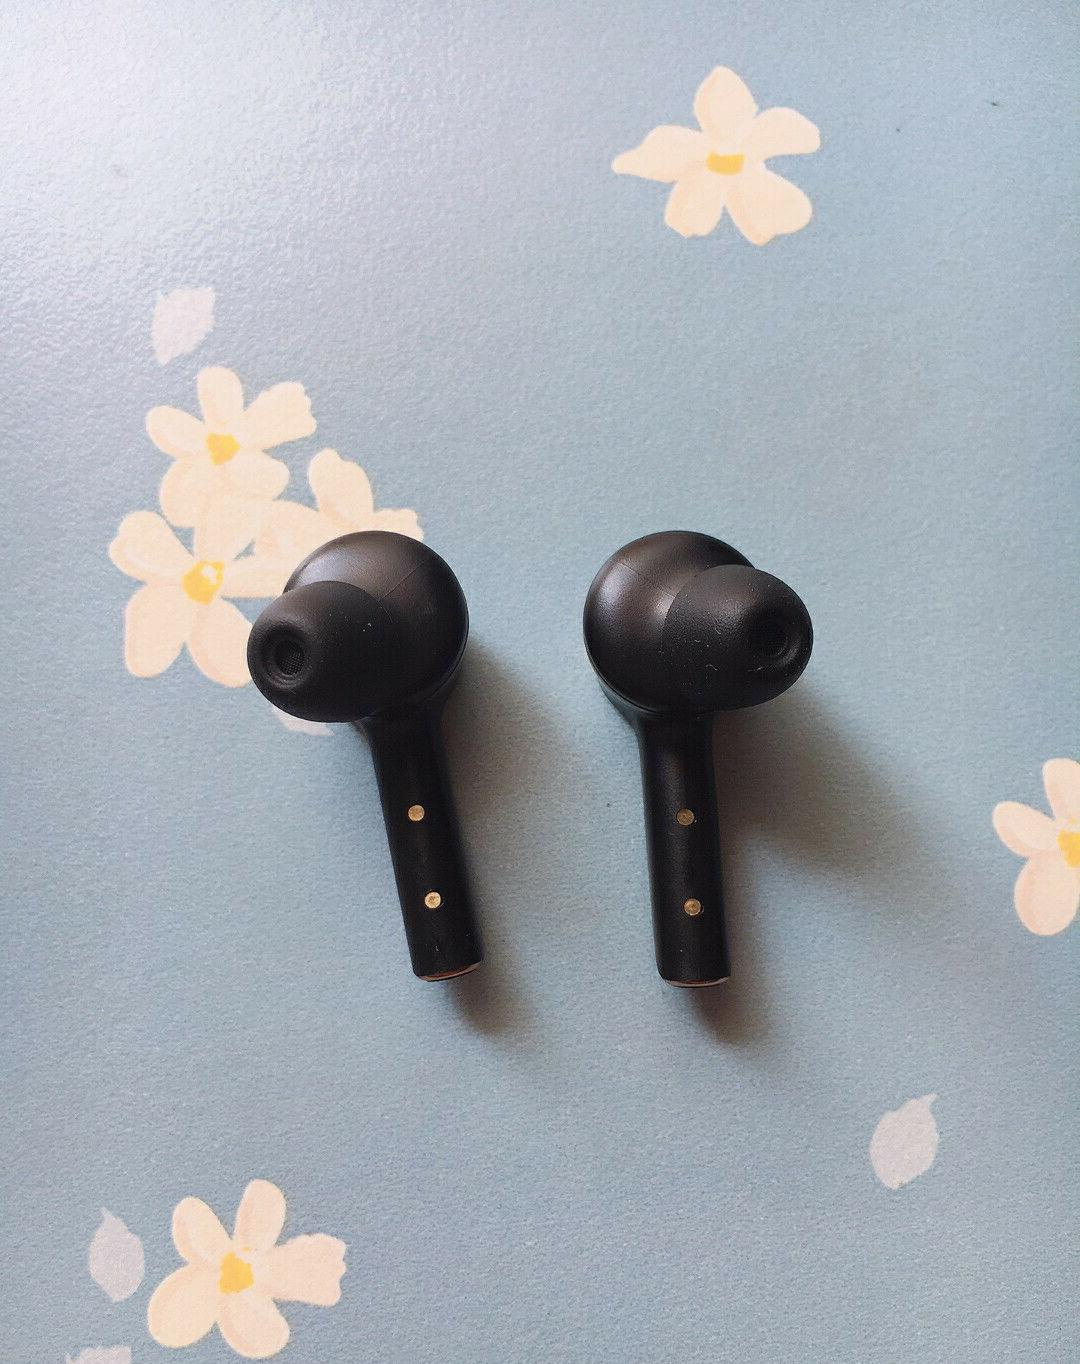 Wireless Bluetooth Headphone Earbud Headsets Android Black